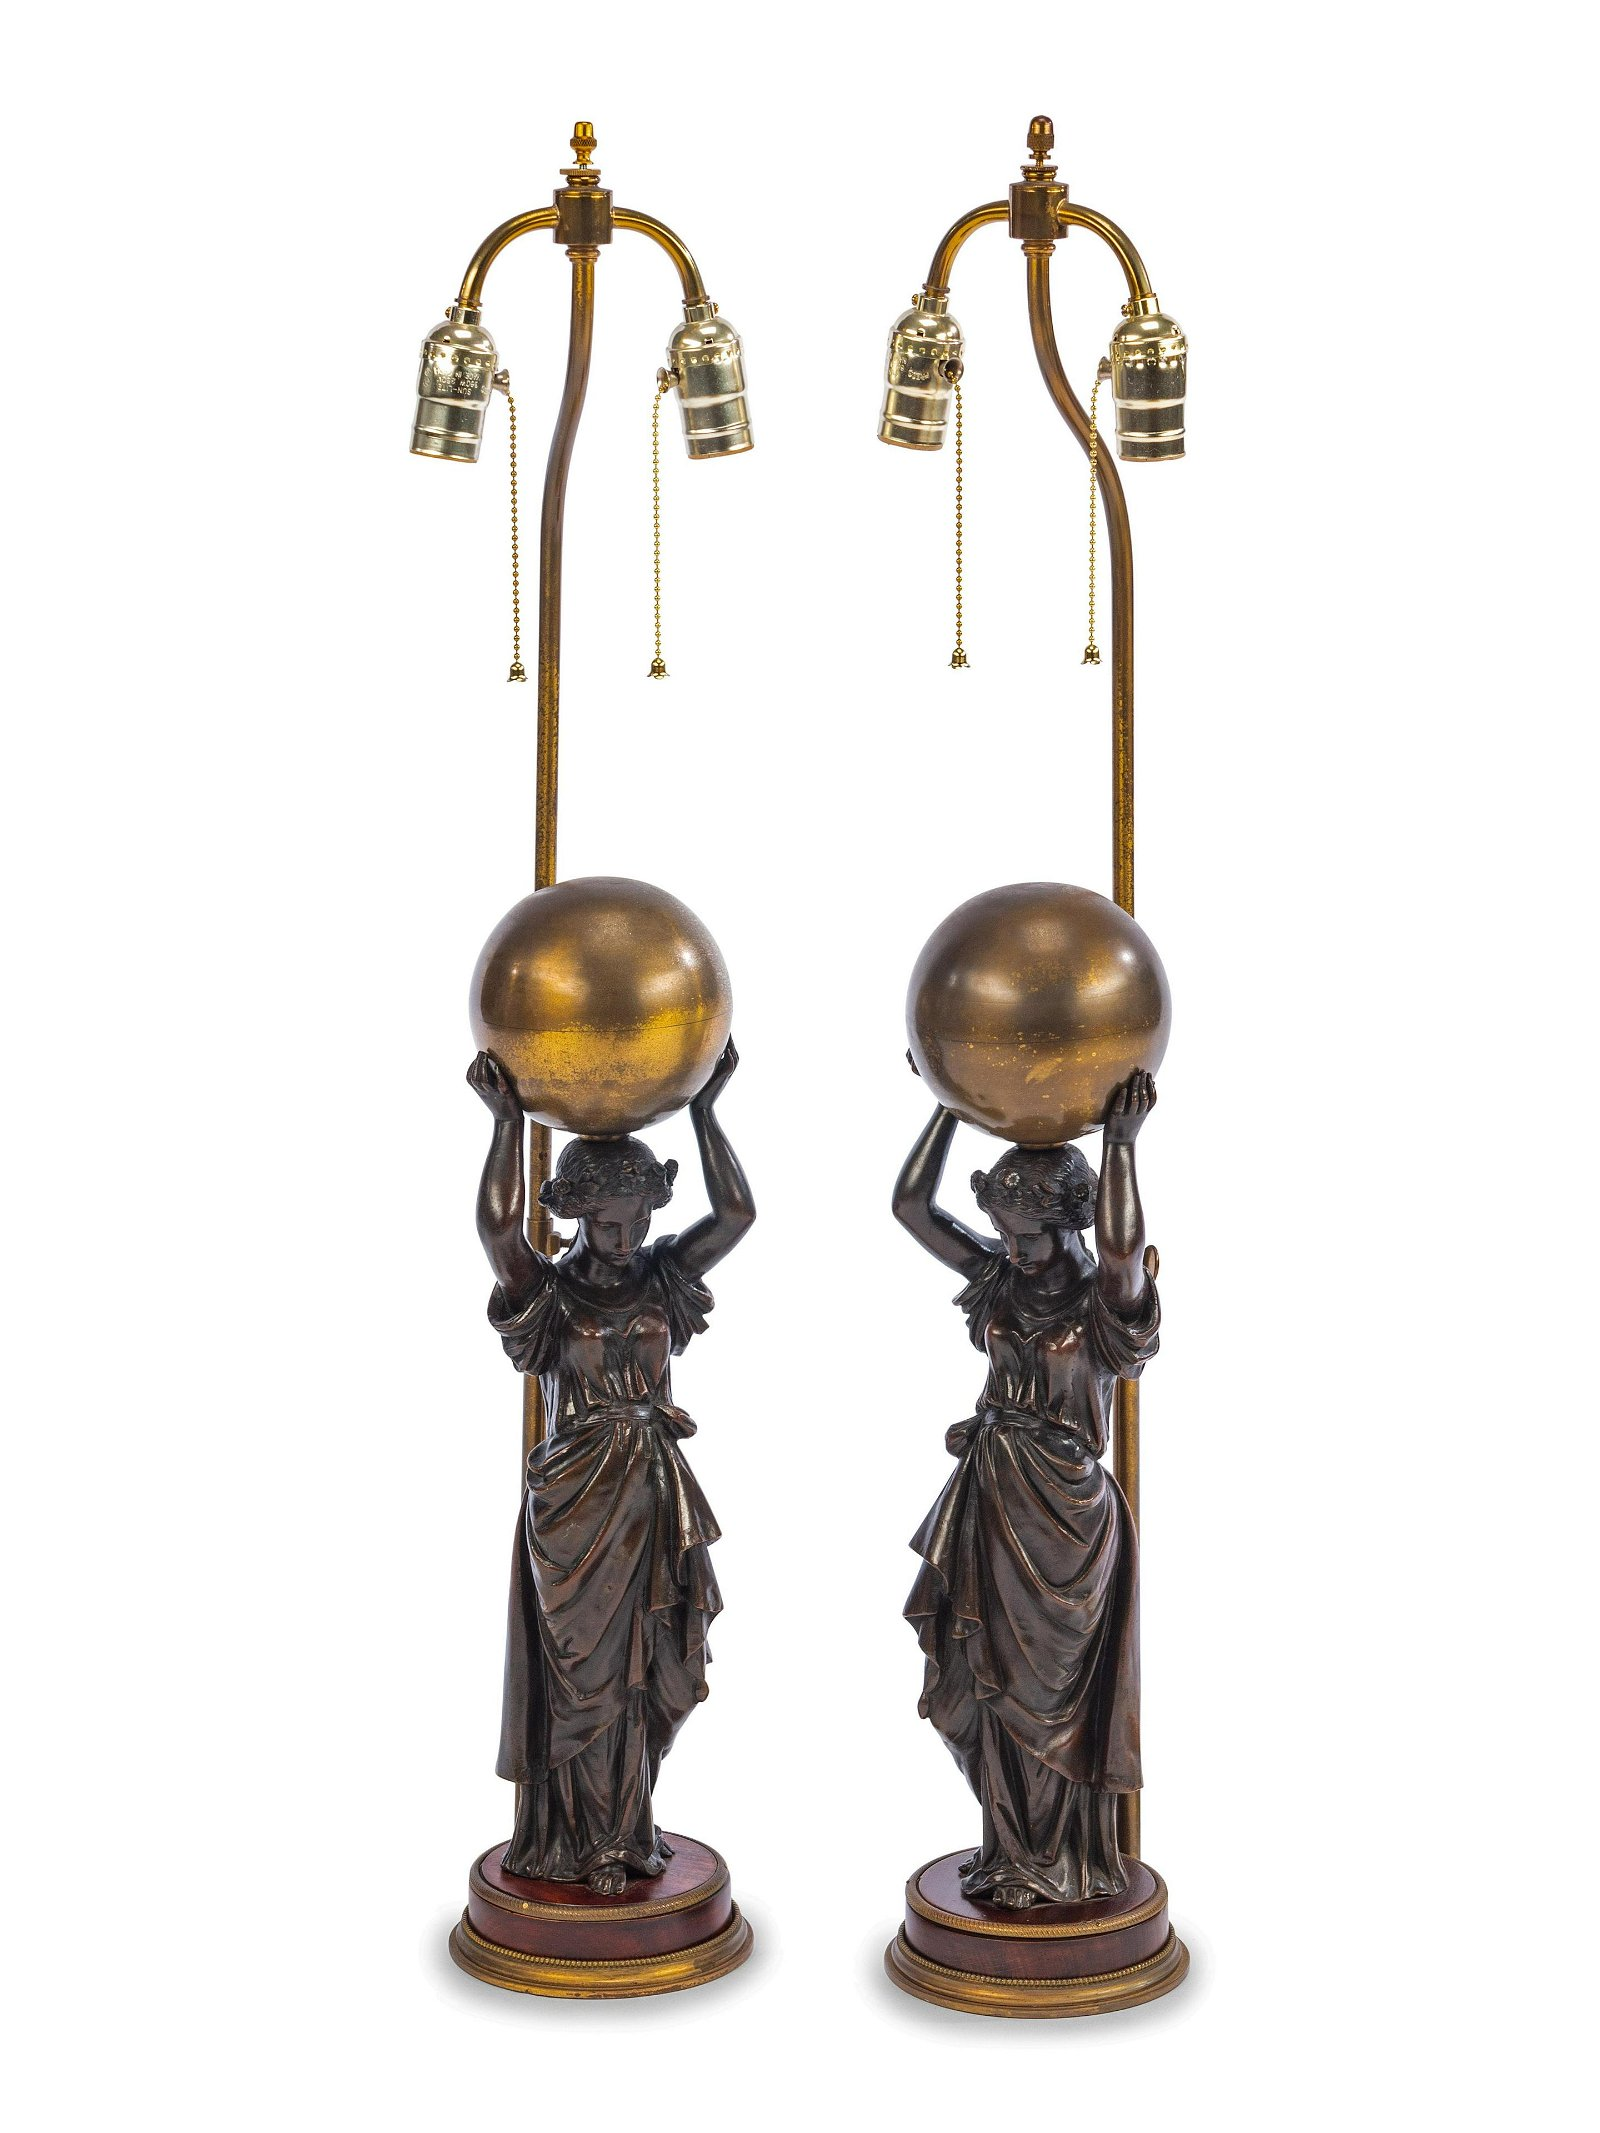 A Pair of French Gilt and Patinated Bronze Figures